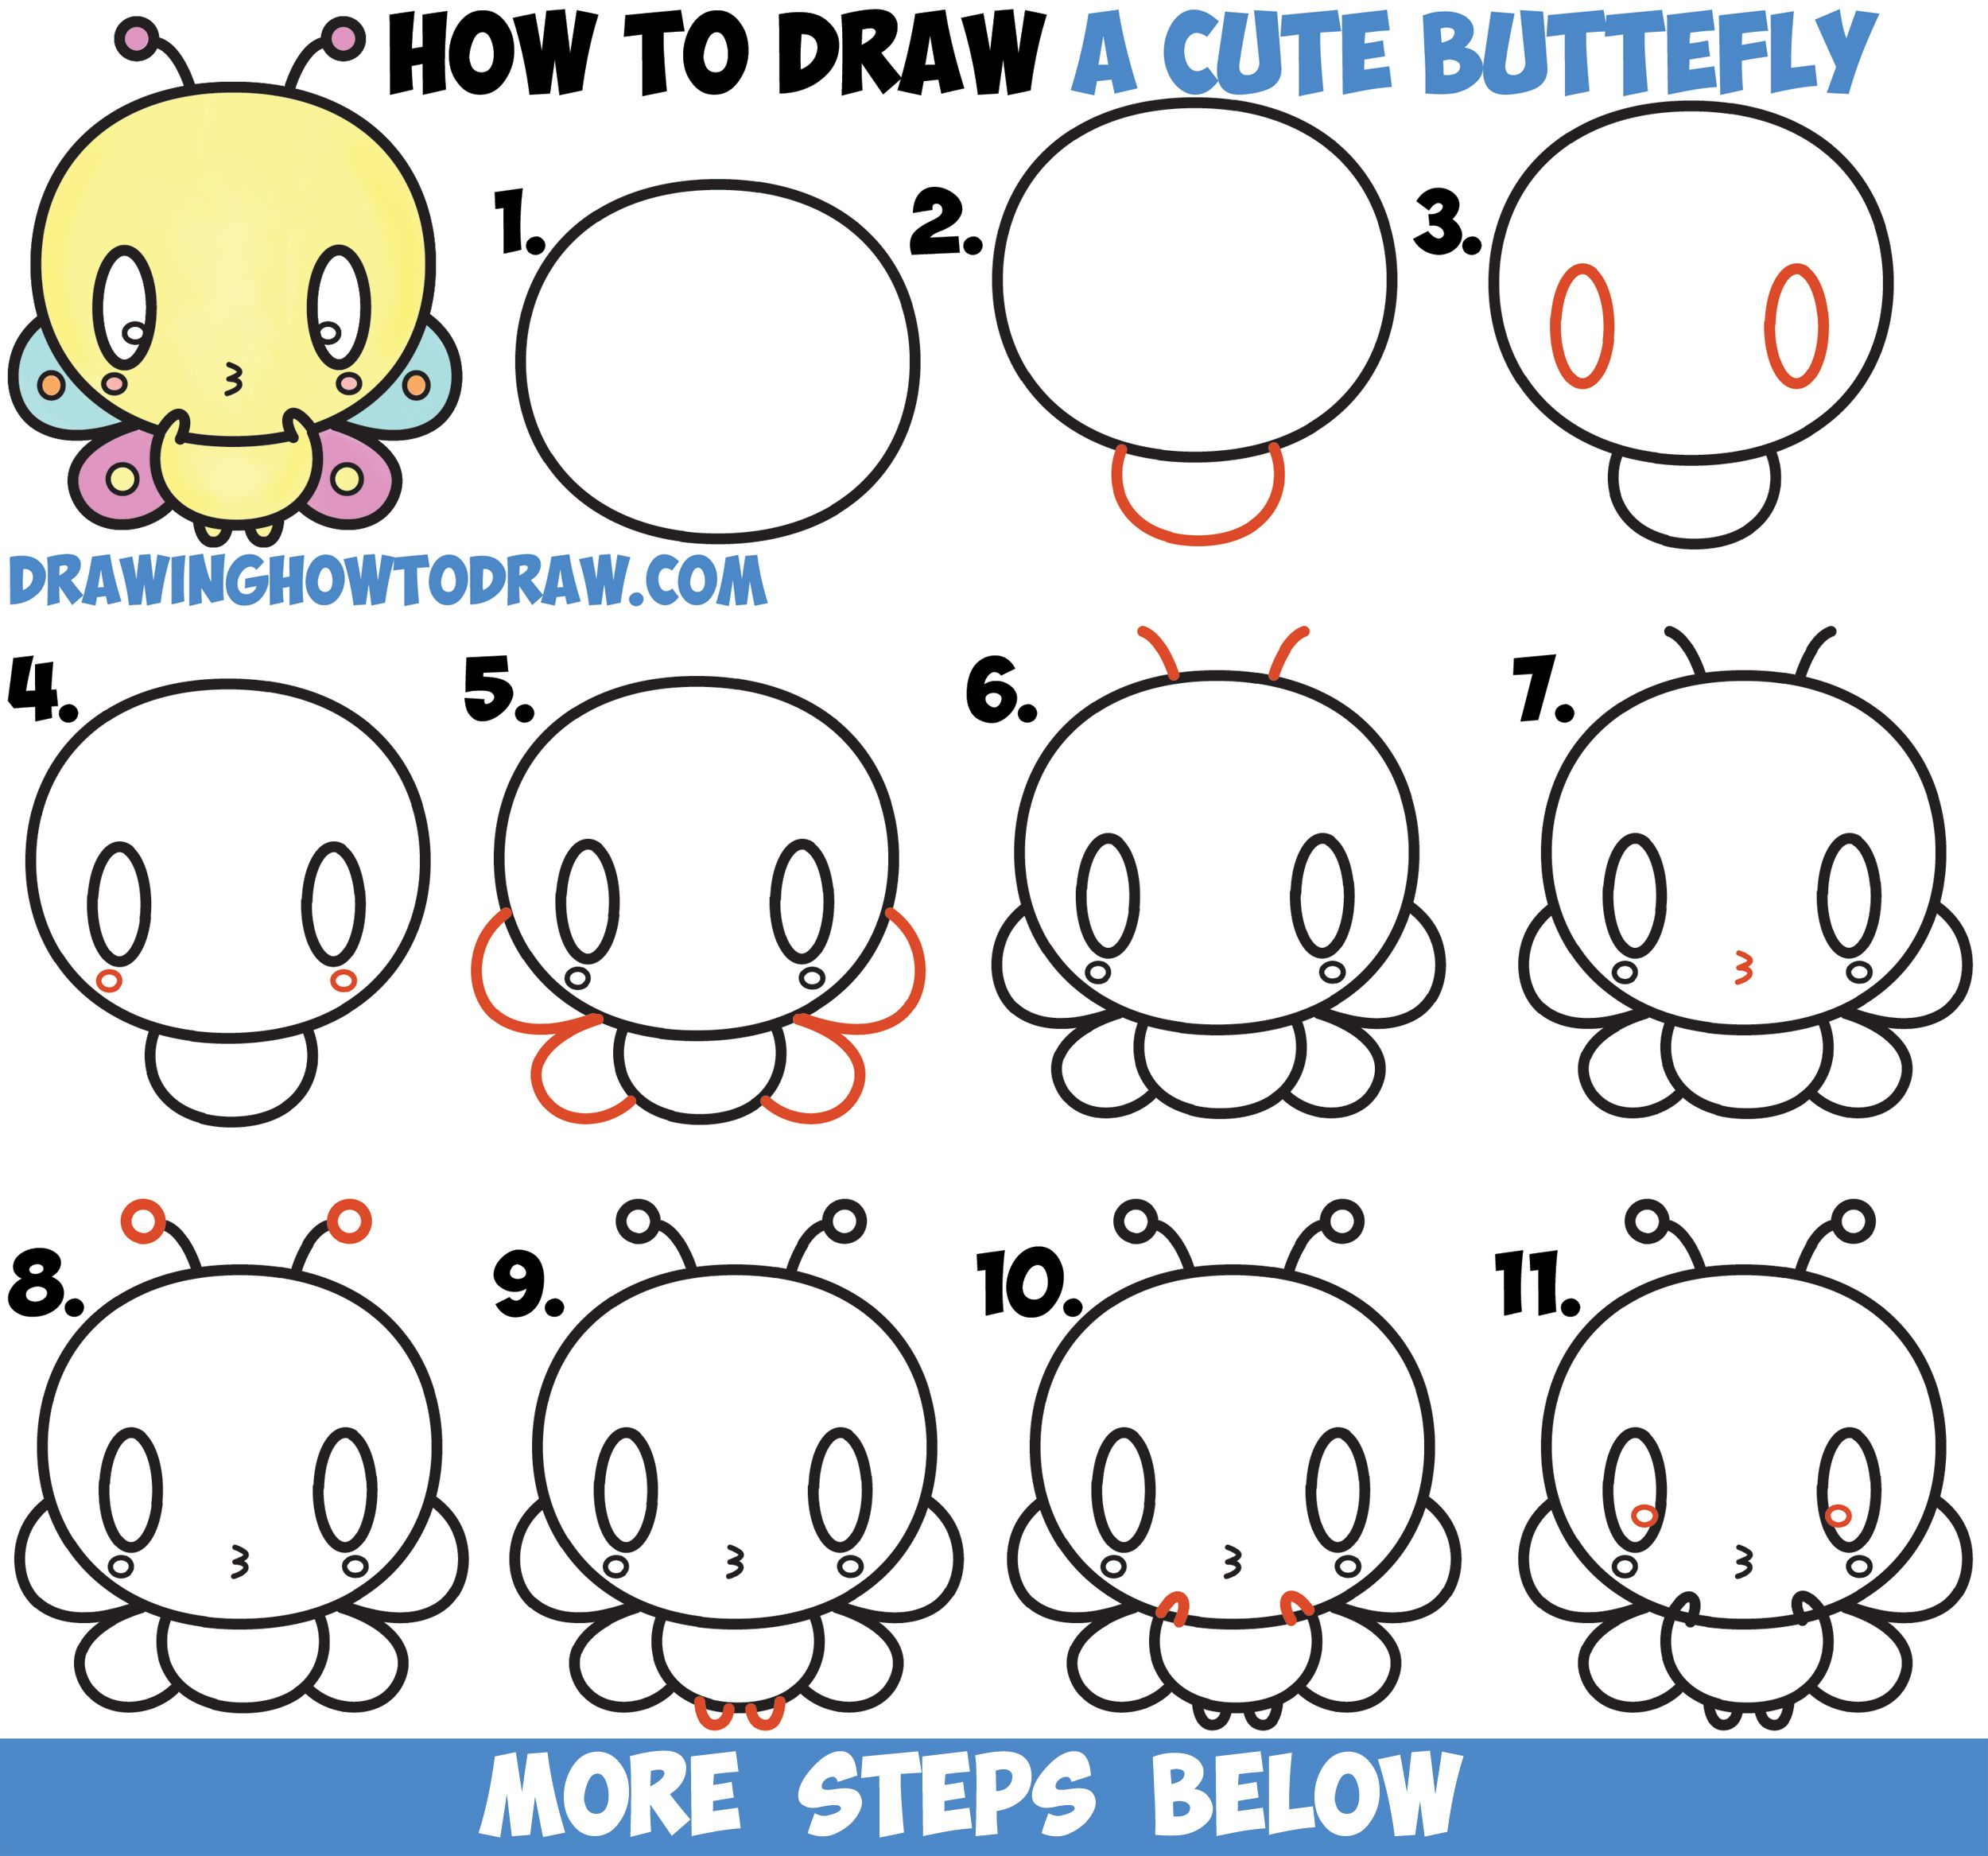 How To Draw Cute Kawaii Cartoon Butterfly Easy Step By Step Drawing Tutorial For Kids How To Draw Step By Step Drawing Tutorials Step By Step Drawing Cartoon Butterfly Drawing